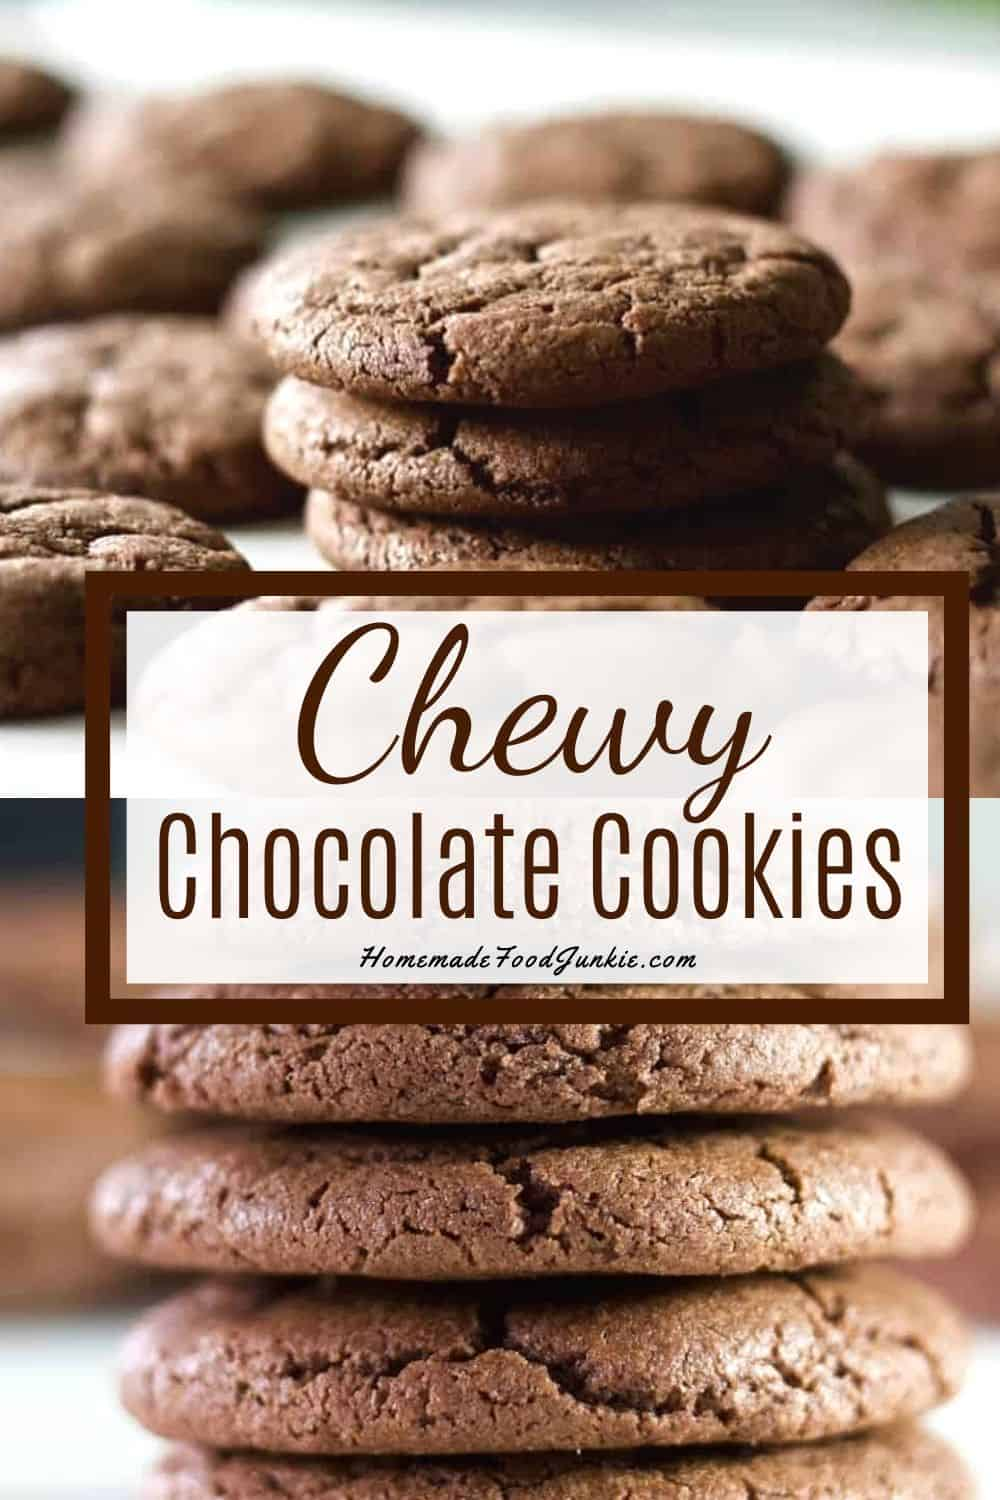 Chewy Chocolate Cookies-pin image